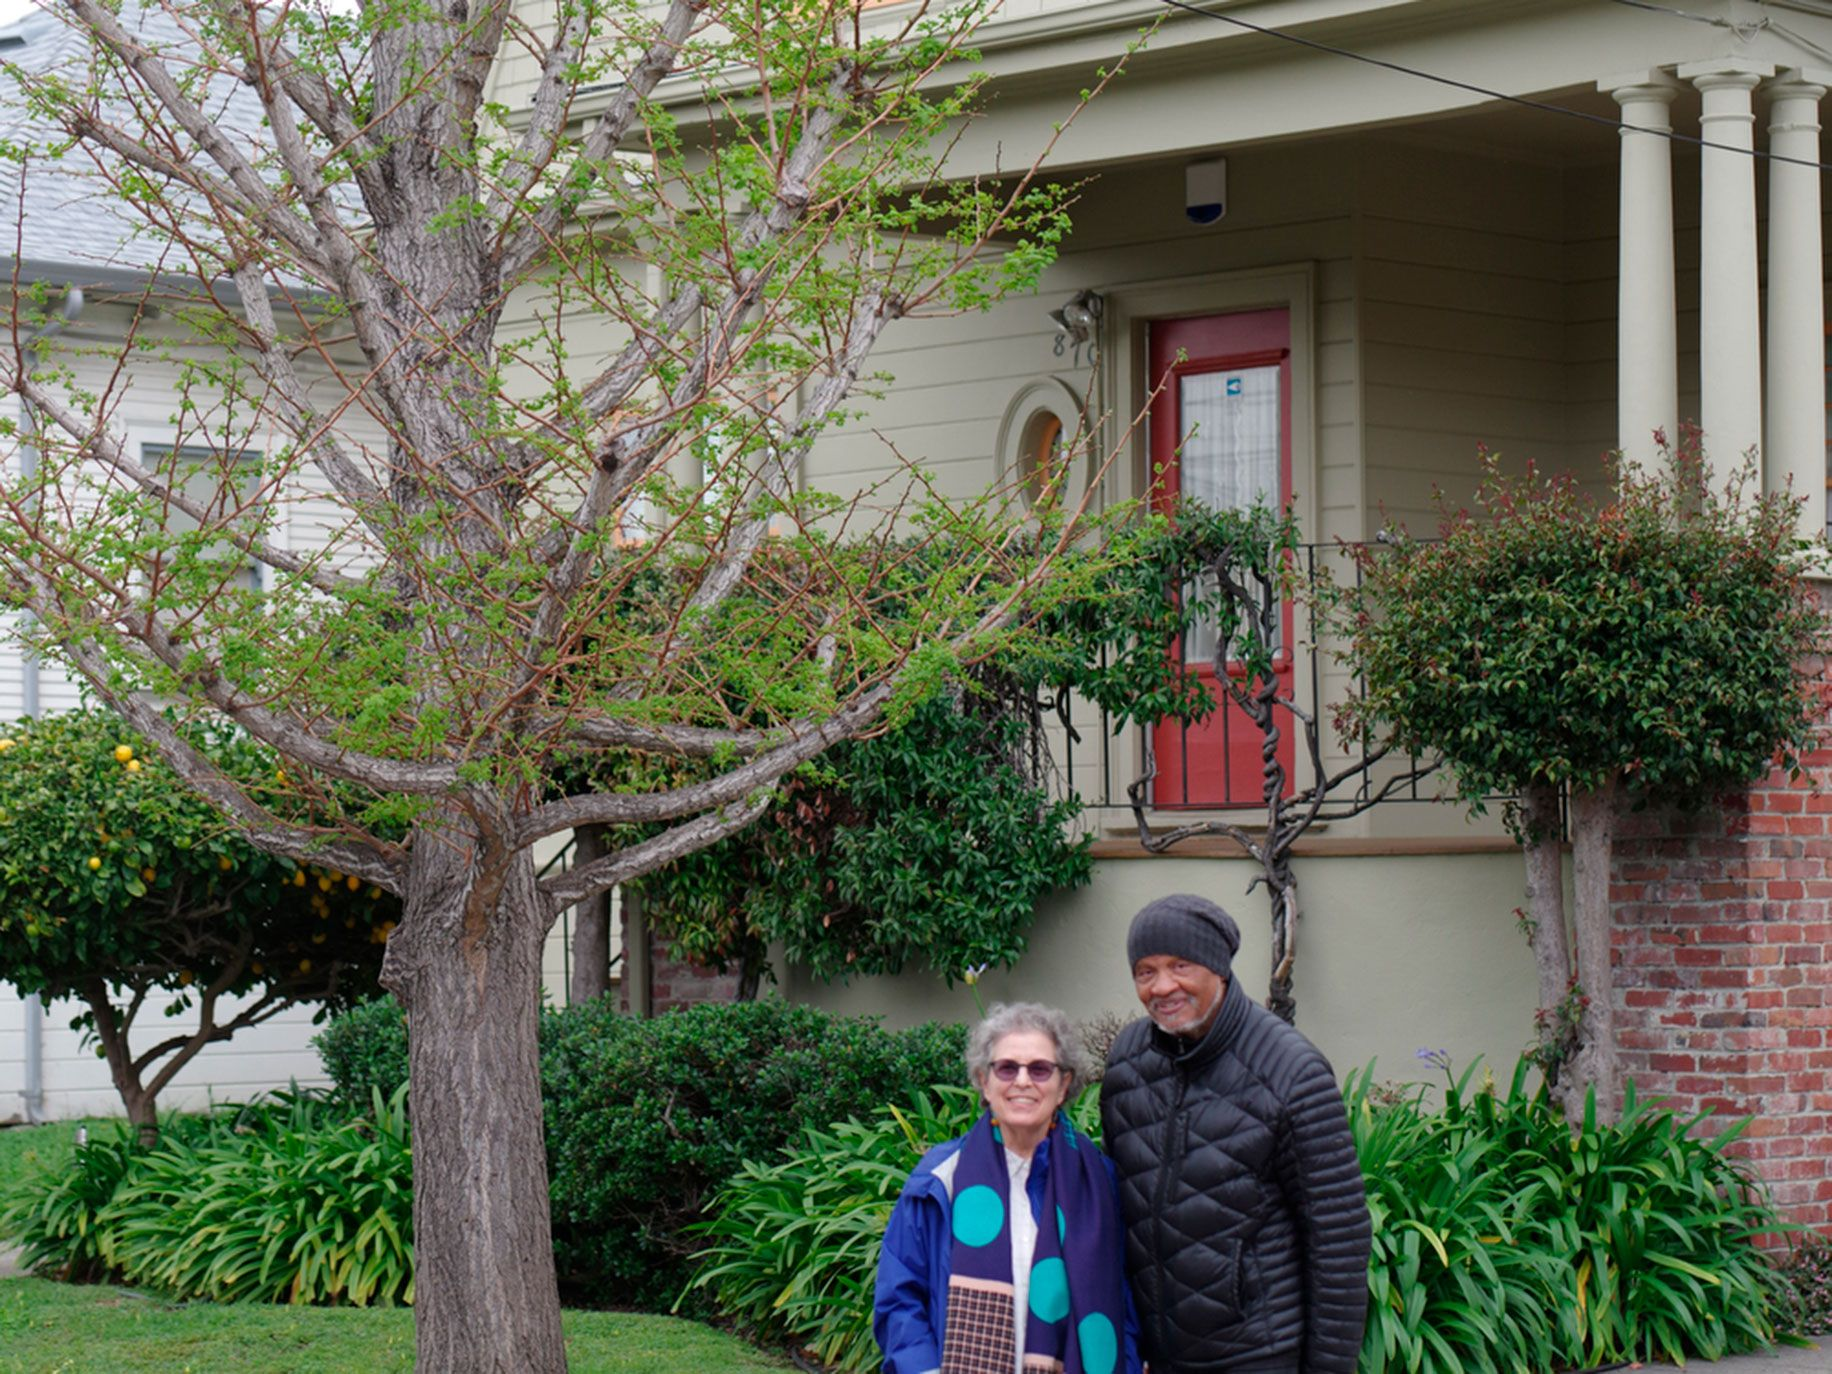 Ishmael Reed, left, and Carla Blank pose for a photograph in front of their North Oakland home in 2019.